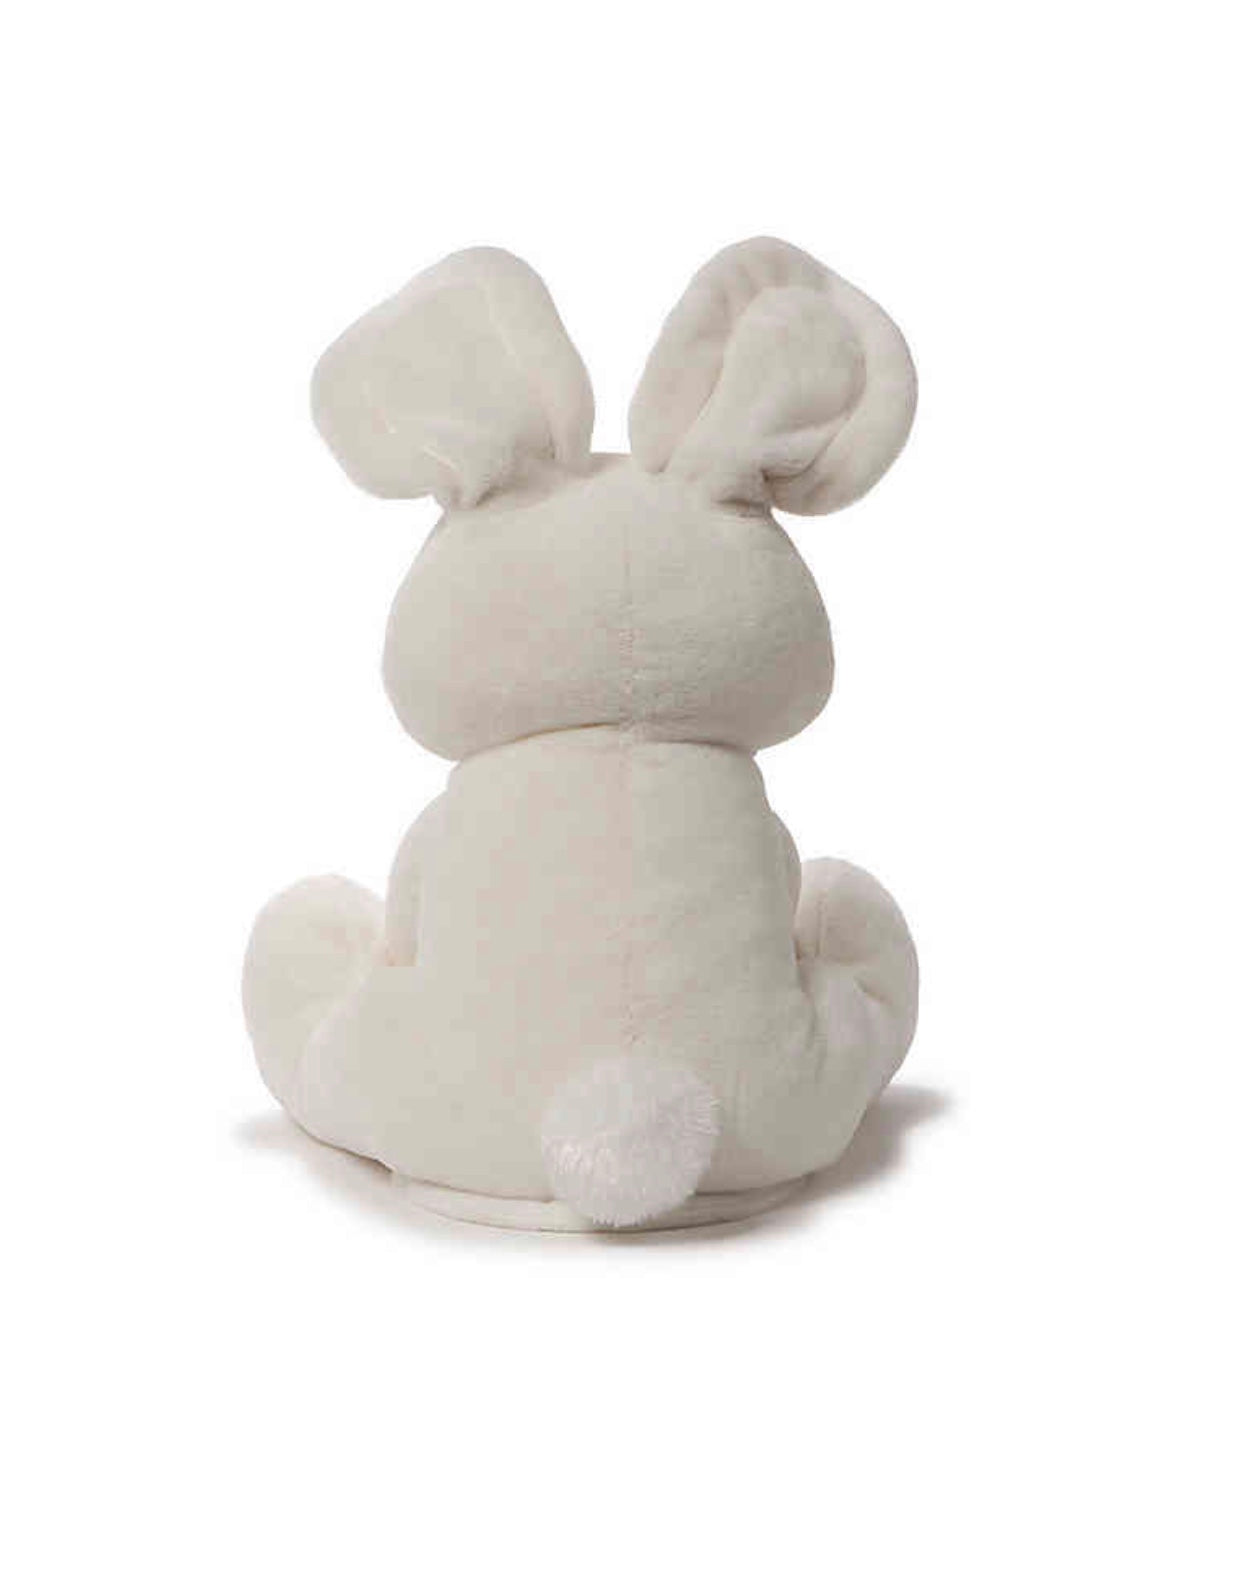 Gund Animated Bunny Plush